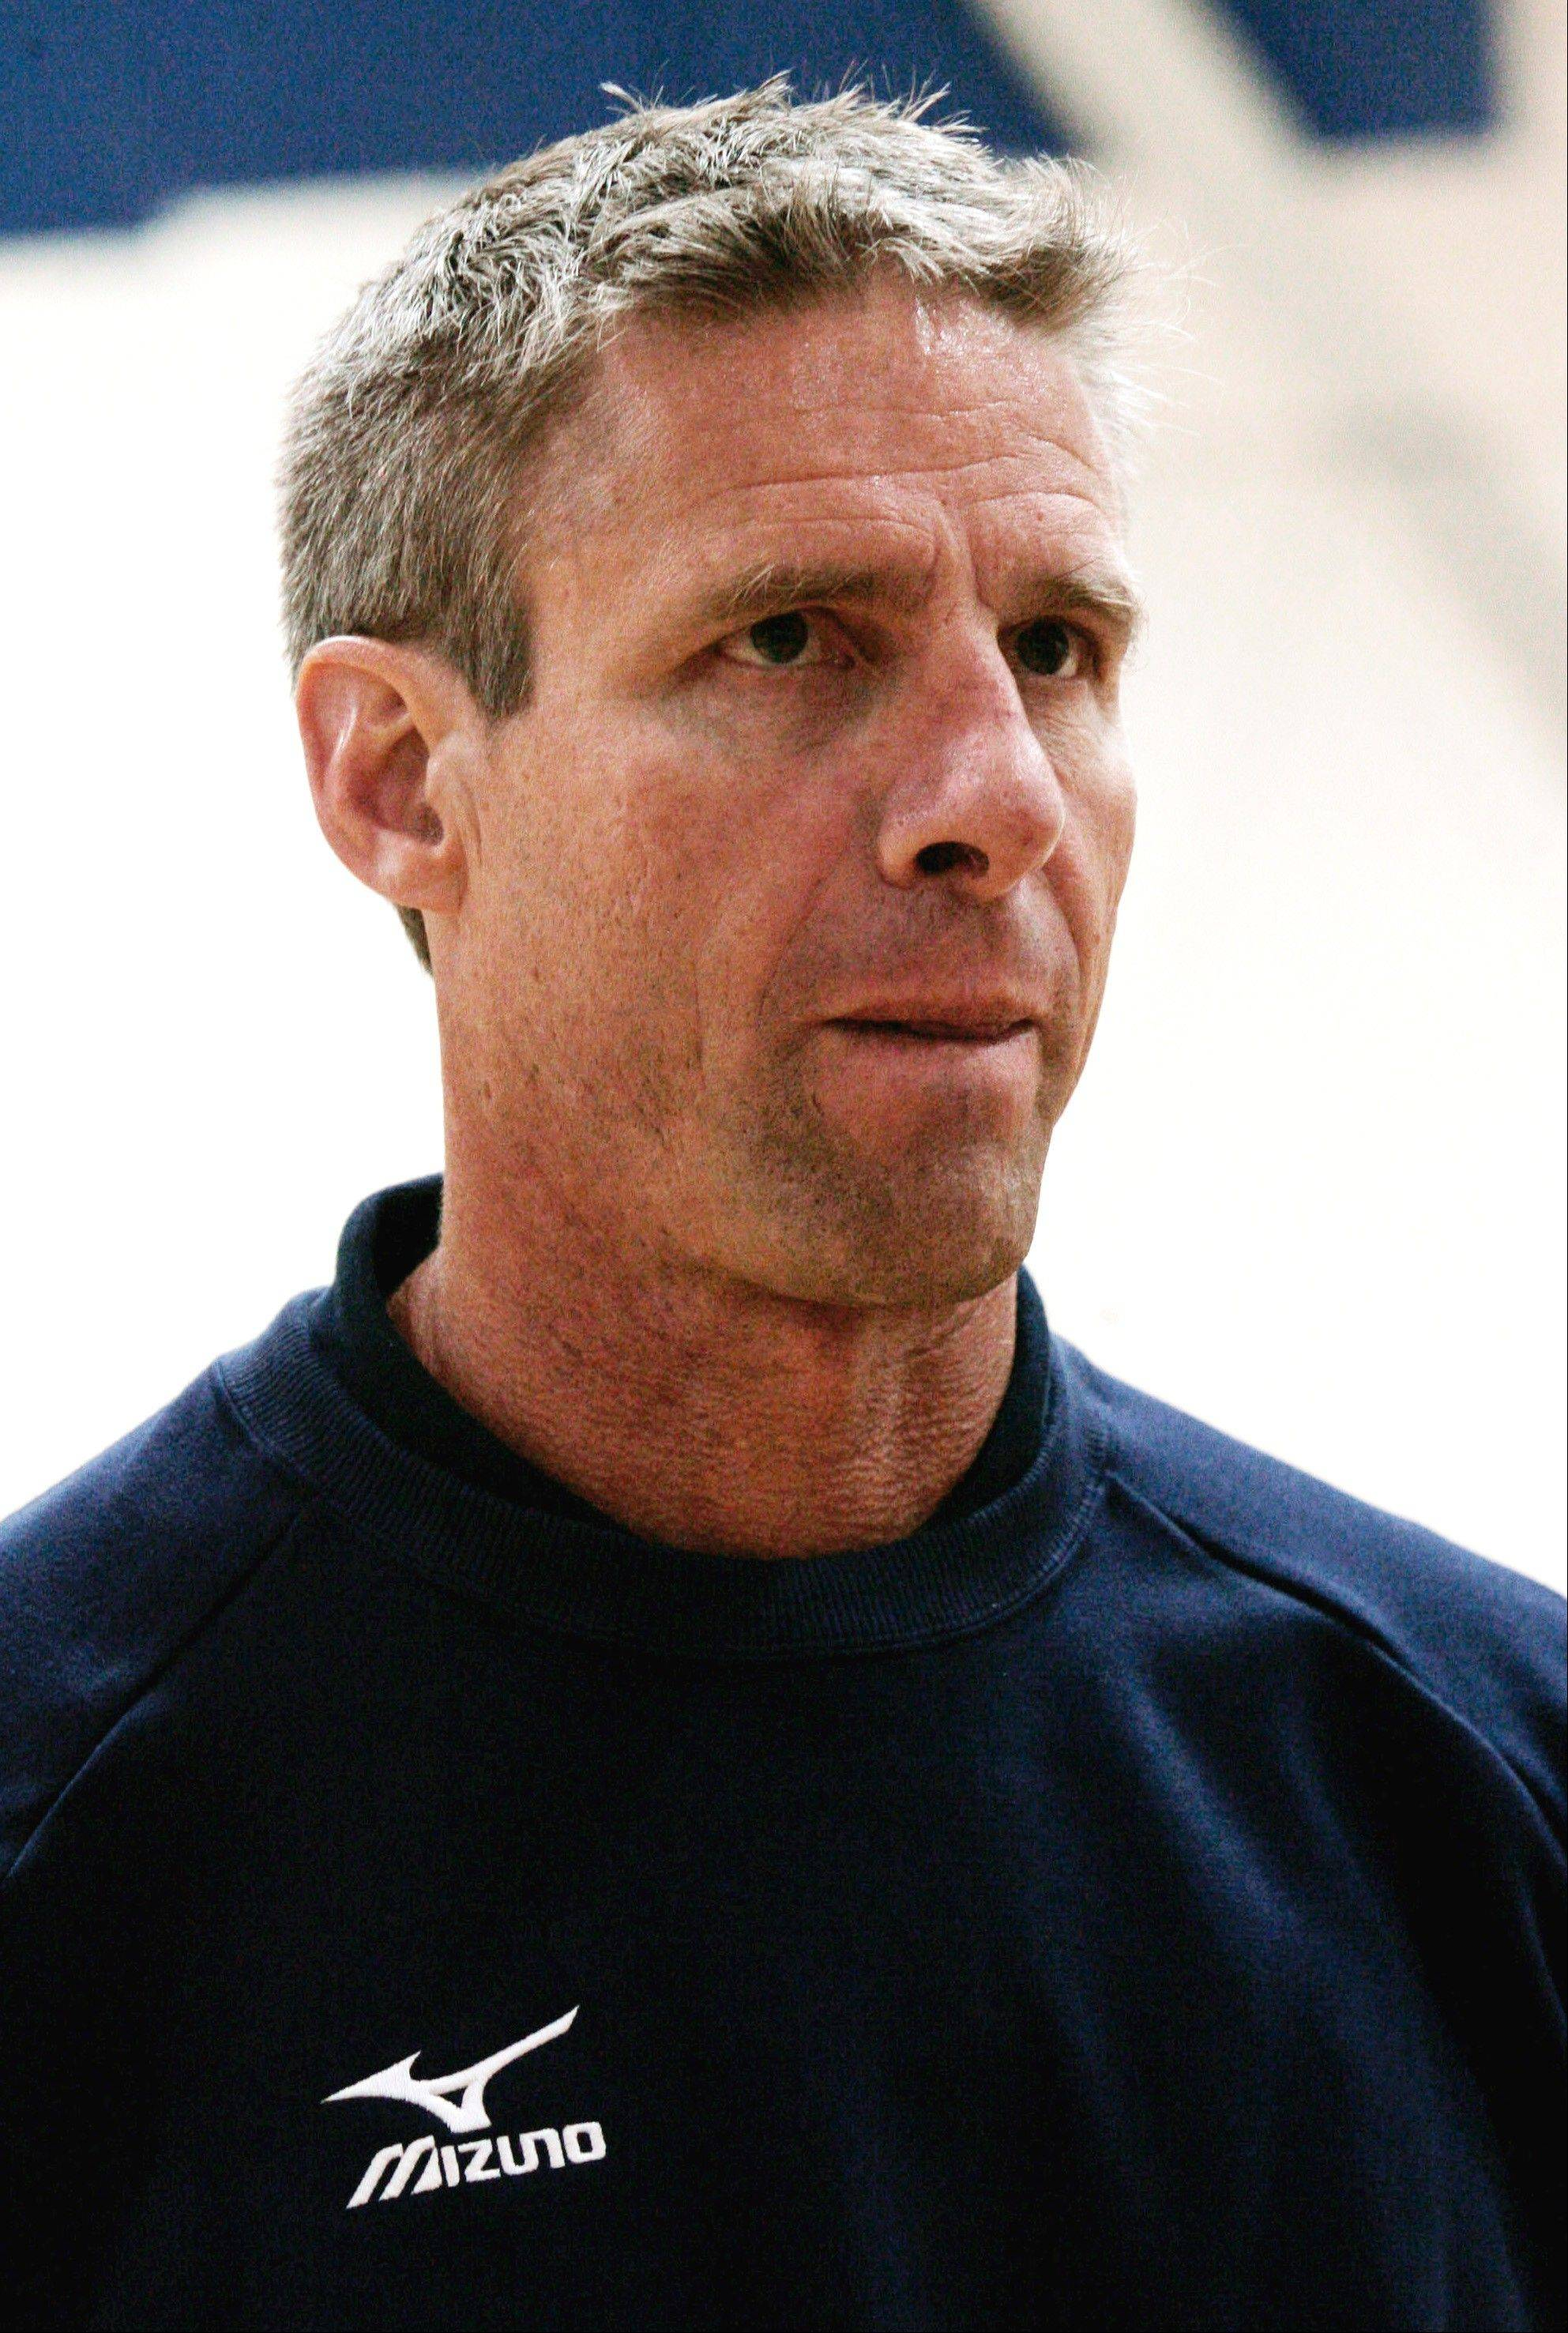 Karch Kiraly is the new head coach of the U.S. women's national volleyball team.